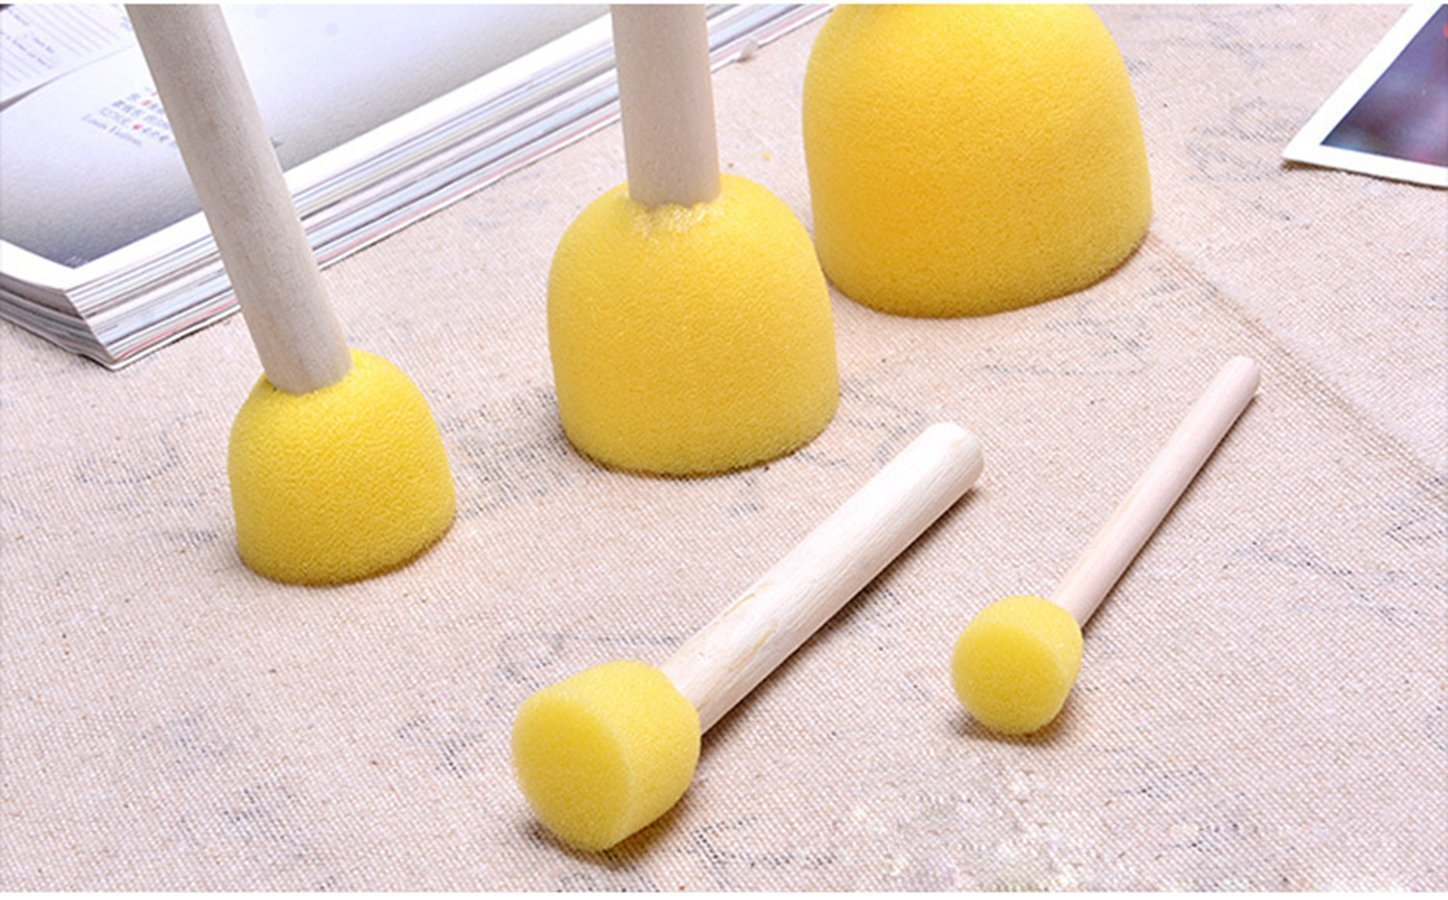 Yellow Micent 20-Pieces Assorted Size Round Sponges Brush Set Kids Painting Tools Sponge Painting Stippler Set DIY Painting Tools for Kids